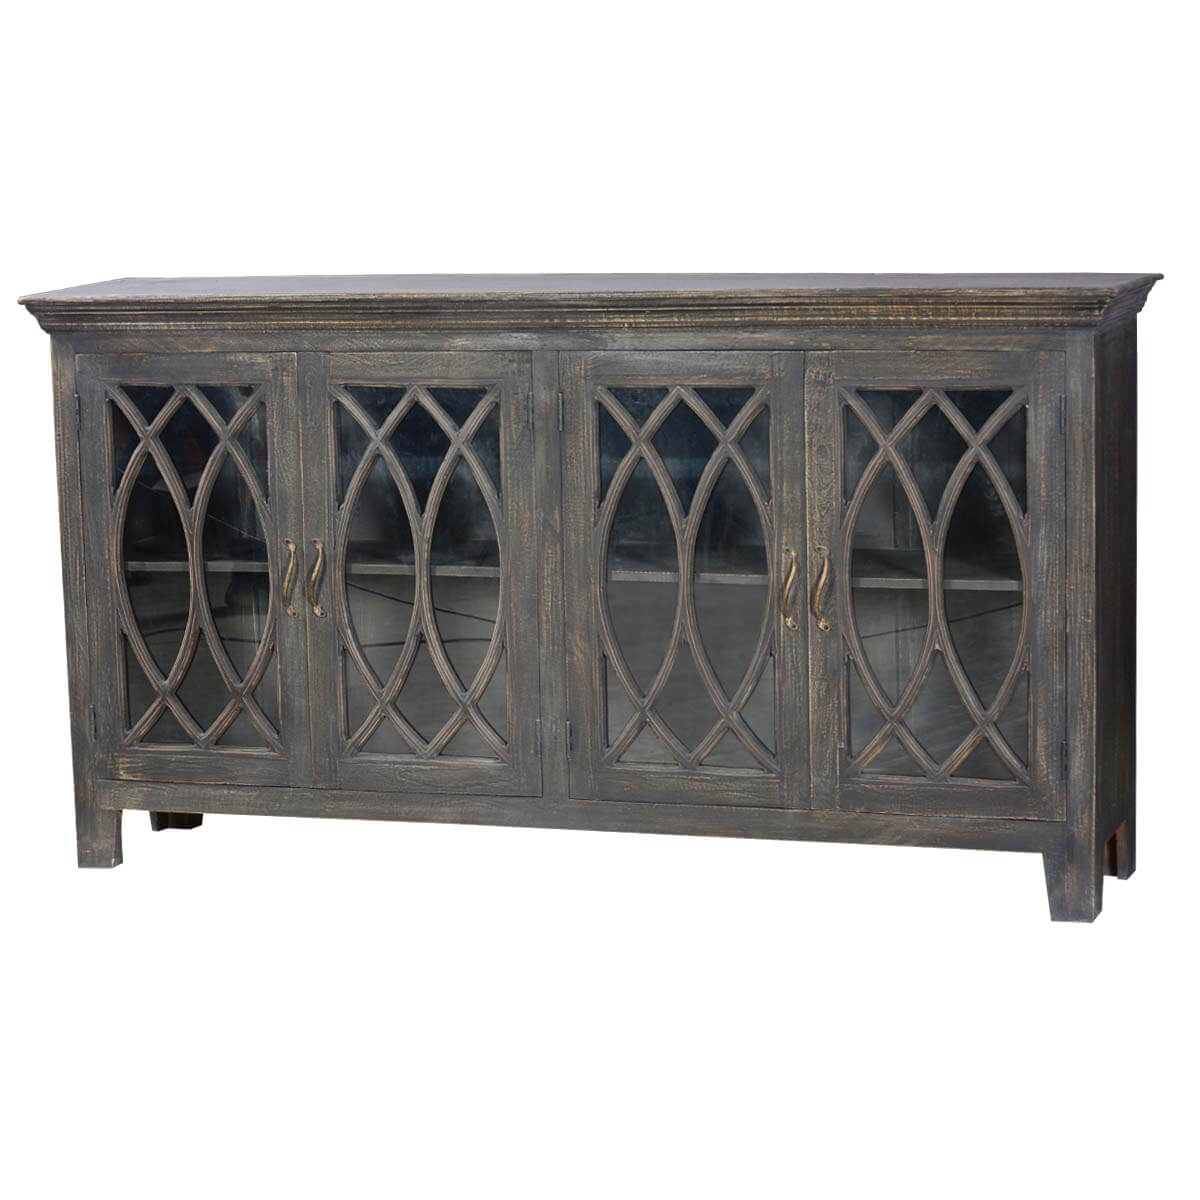 18th C English Smokey Mango Wood Display Sideboard Buffet Credenza. Full resolution‎  file, nominally Width 1200 Height 1200 pixels, file with #B48317.